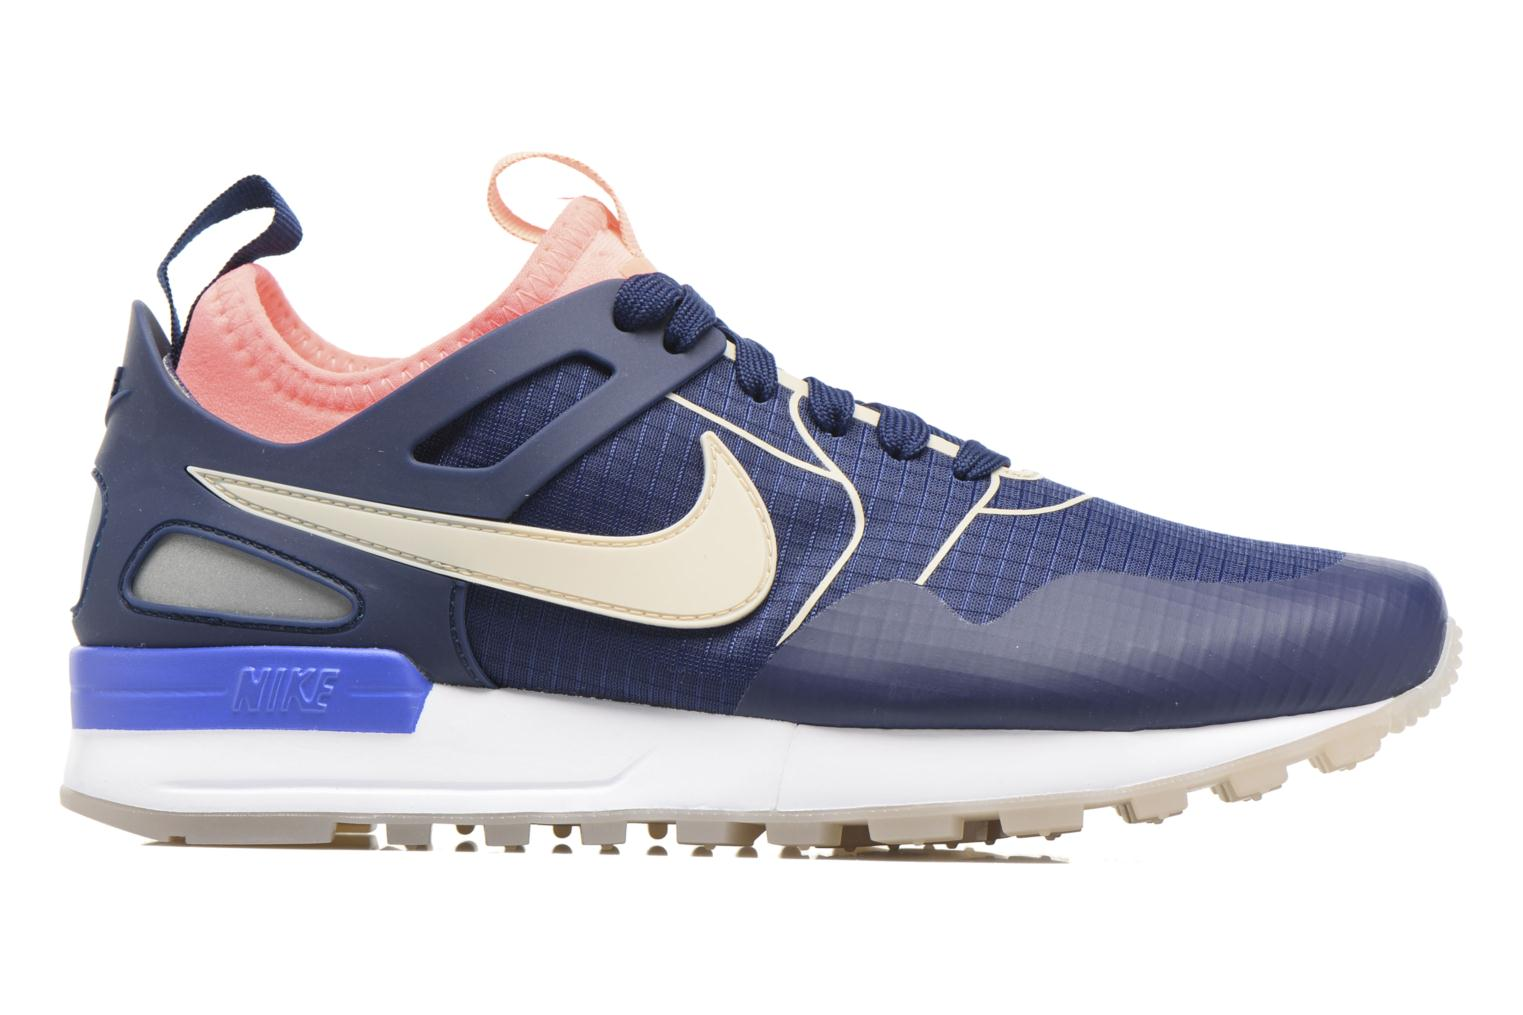 W Nike Air Pegasus 89 Tech Si Binary Blue/Oatmeal-Lava Glow-White